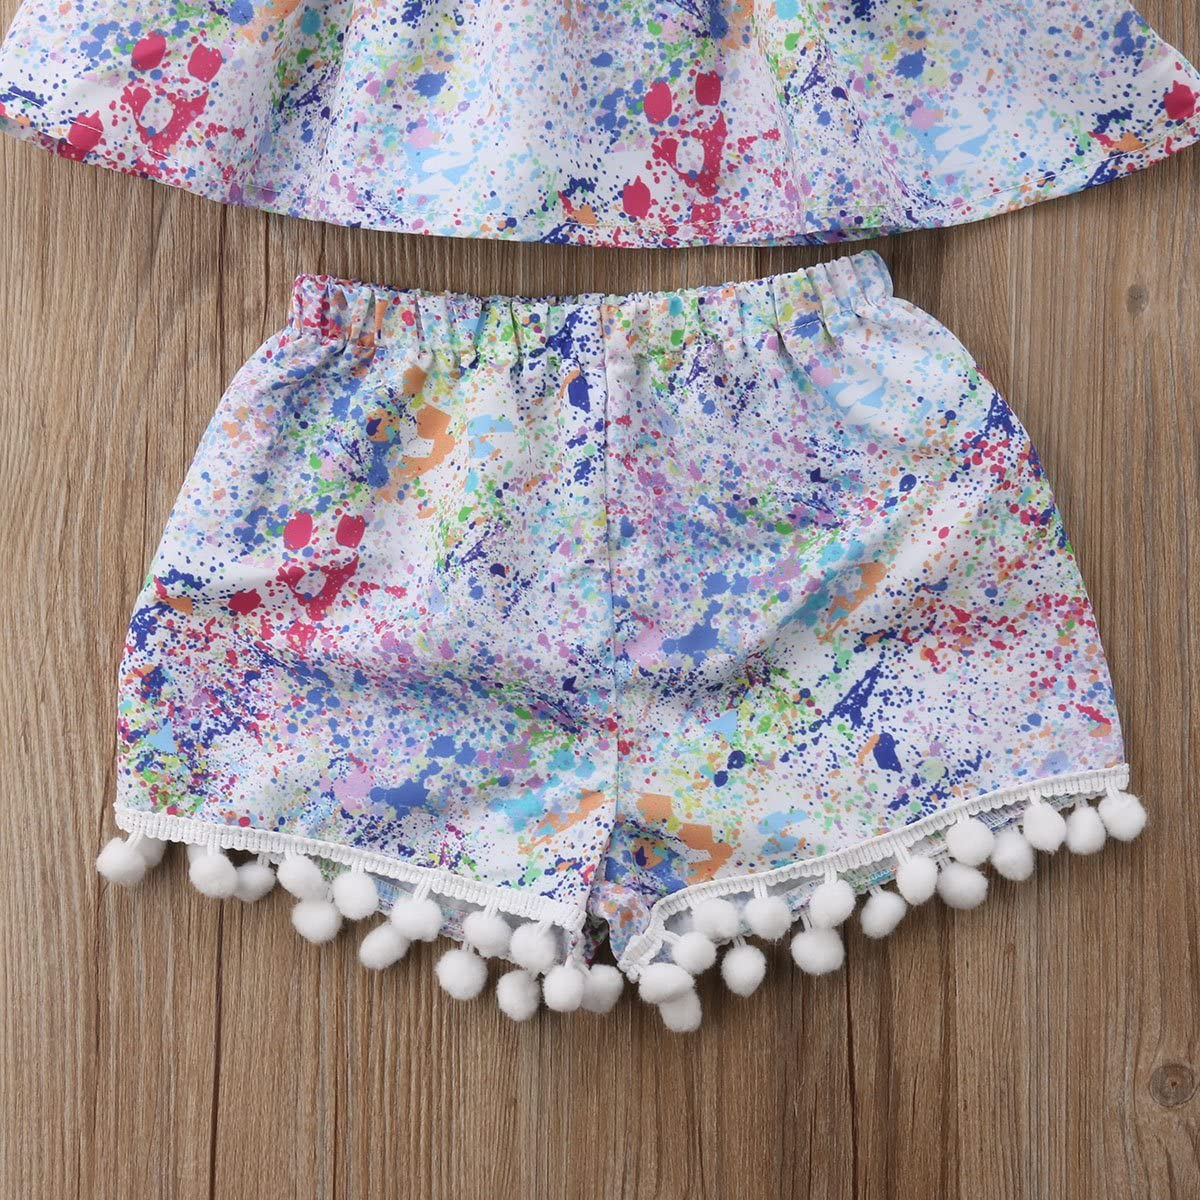 Infant Baby Girls 3Pcs Outfits Multicolored Off Shoulder Crop Top+High Waist Shorts+Headband Clothing Set